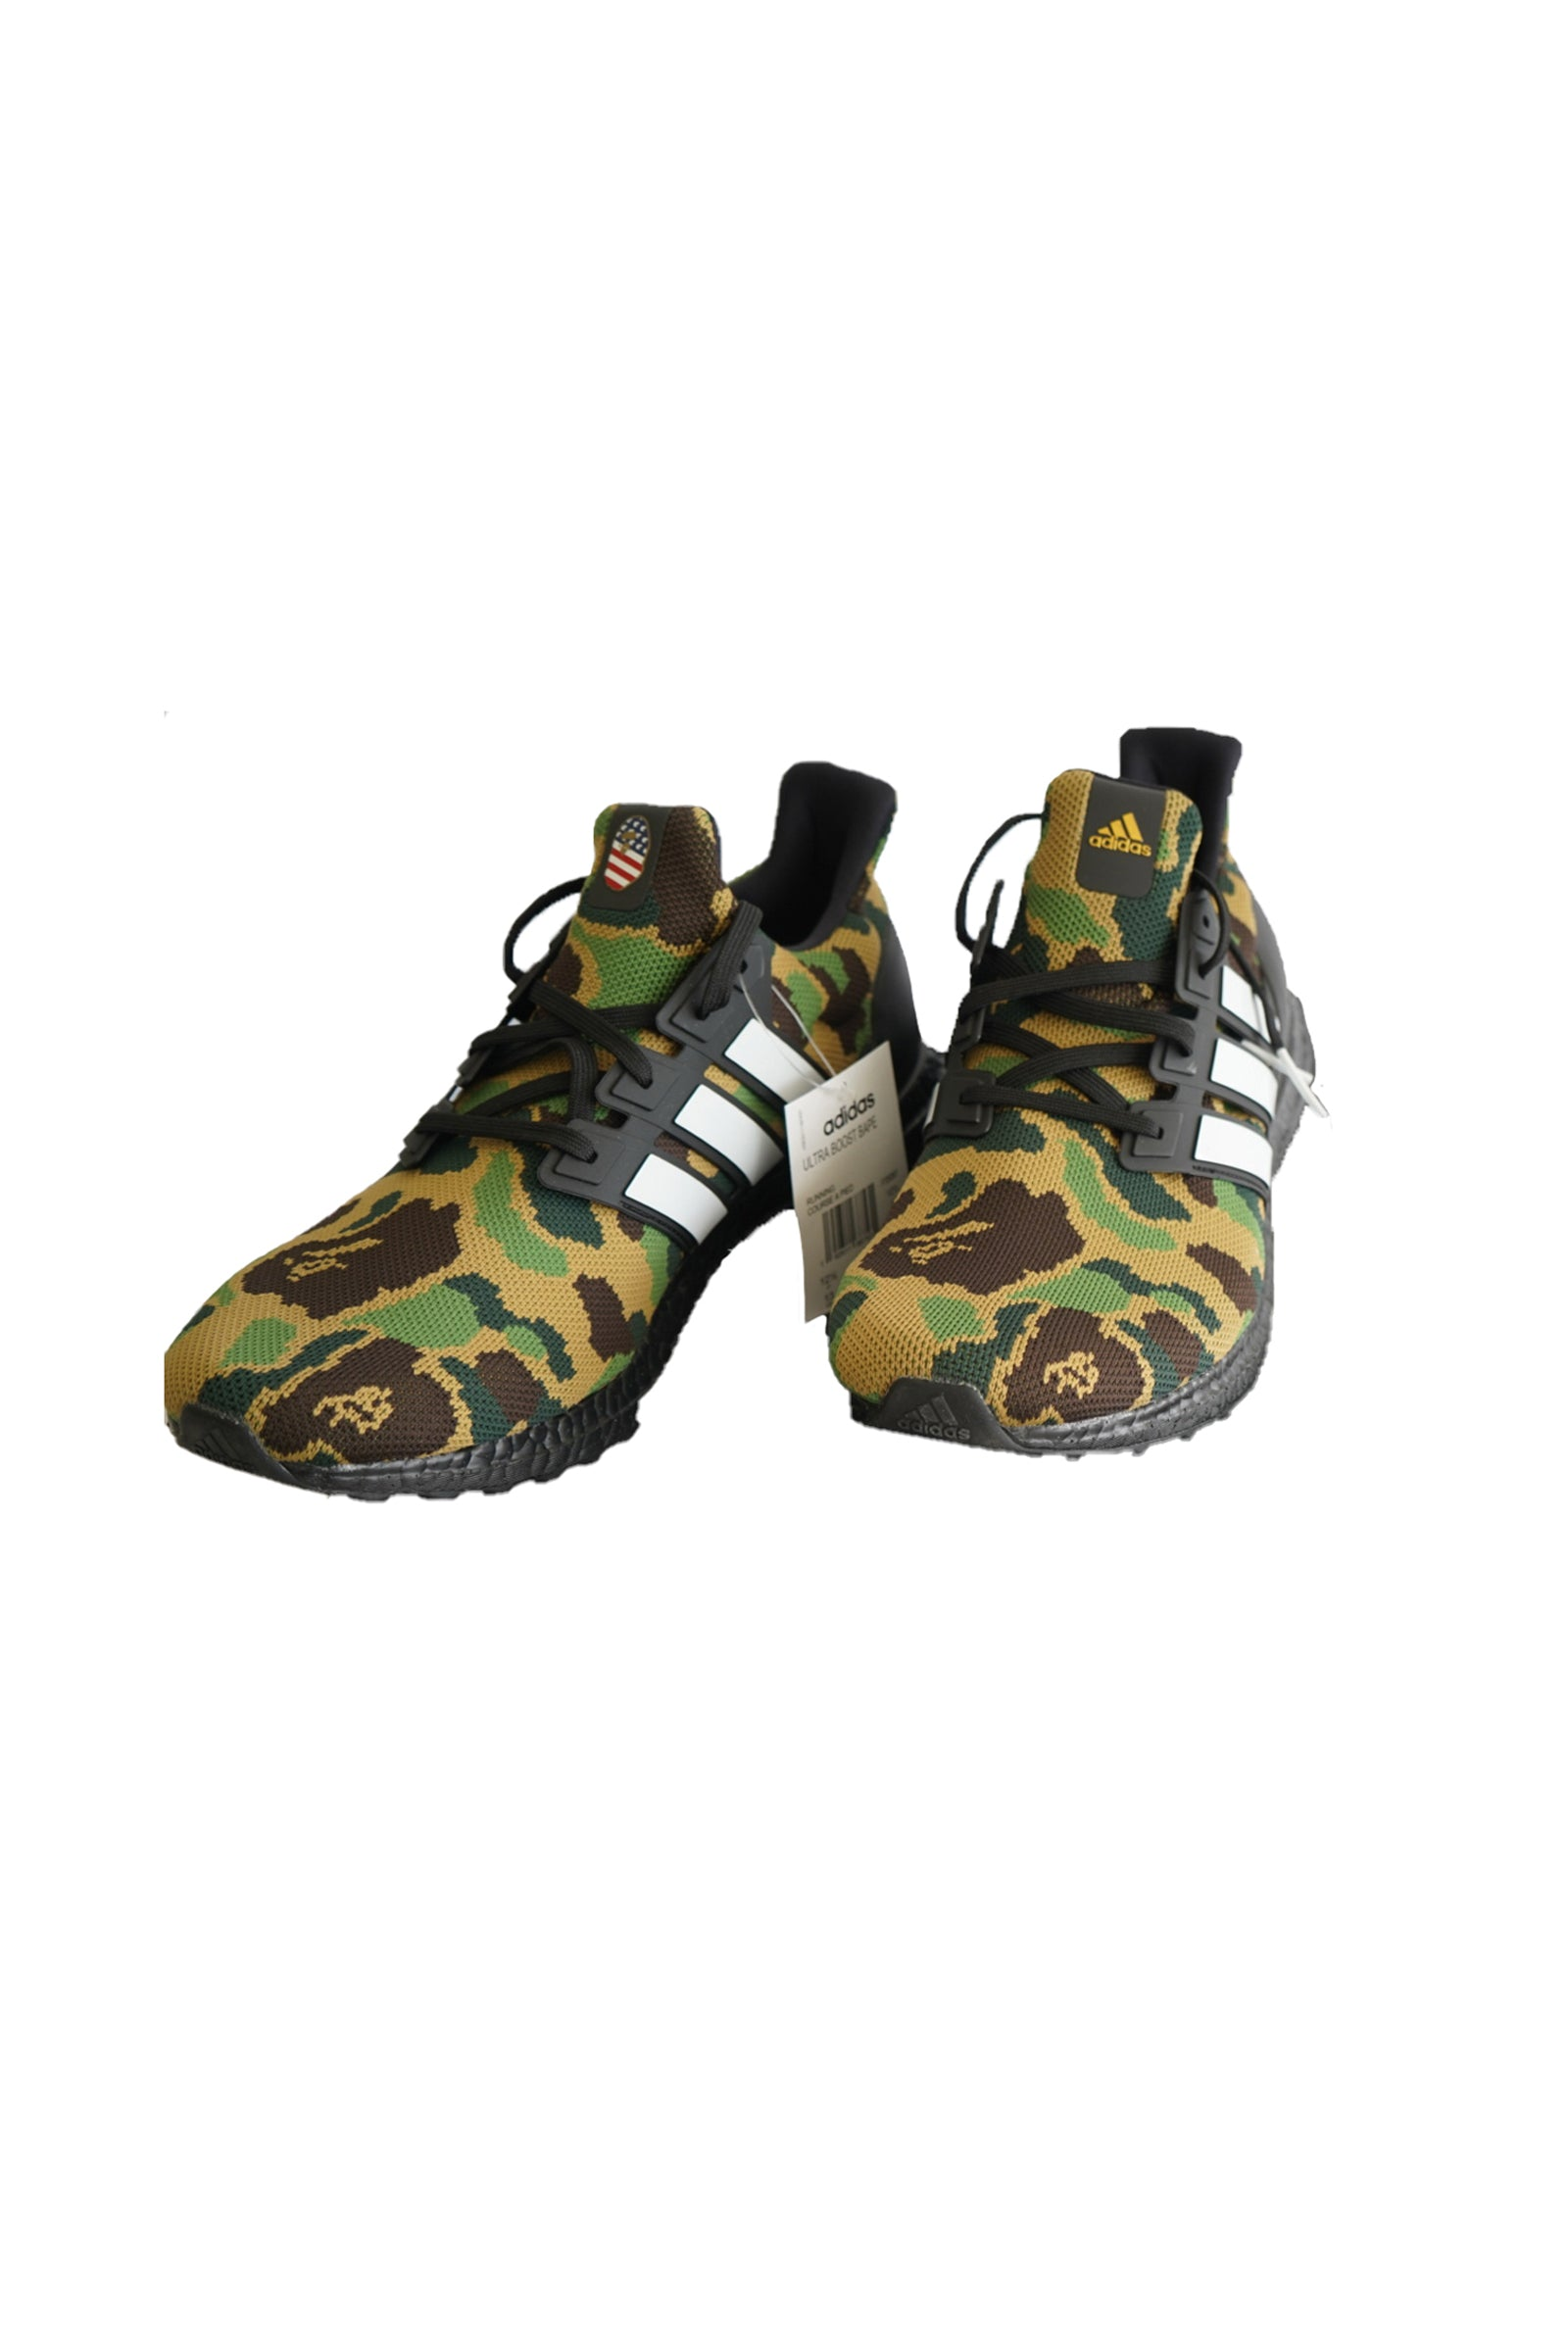 Bathing Ape Adidas (new with box) Size 13